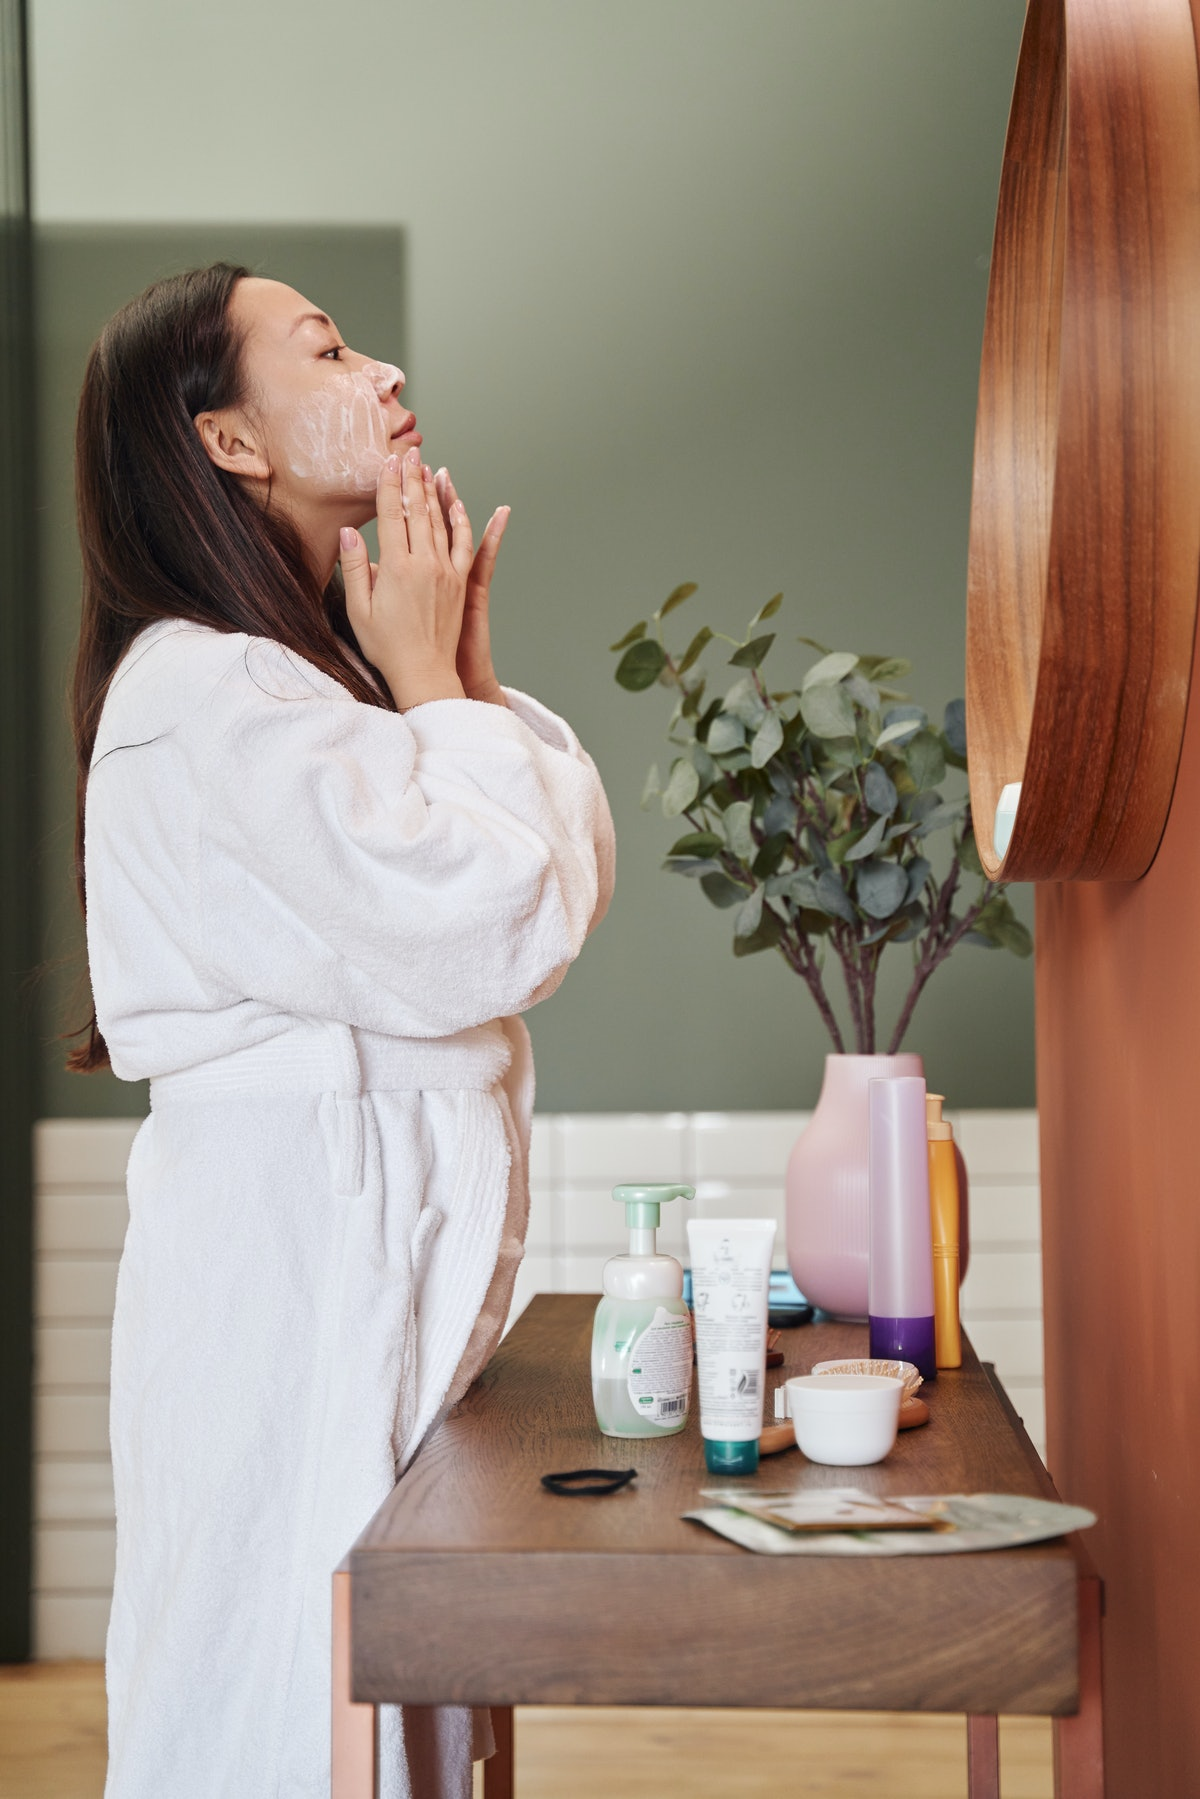 A woman standing in front of her bathroom mirror applying a face moisturizer